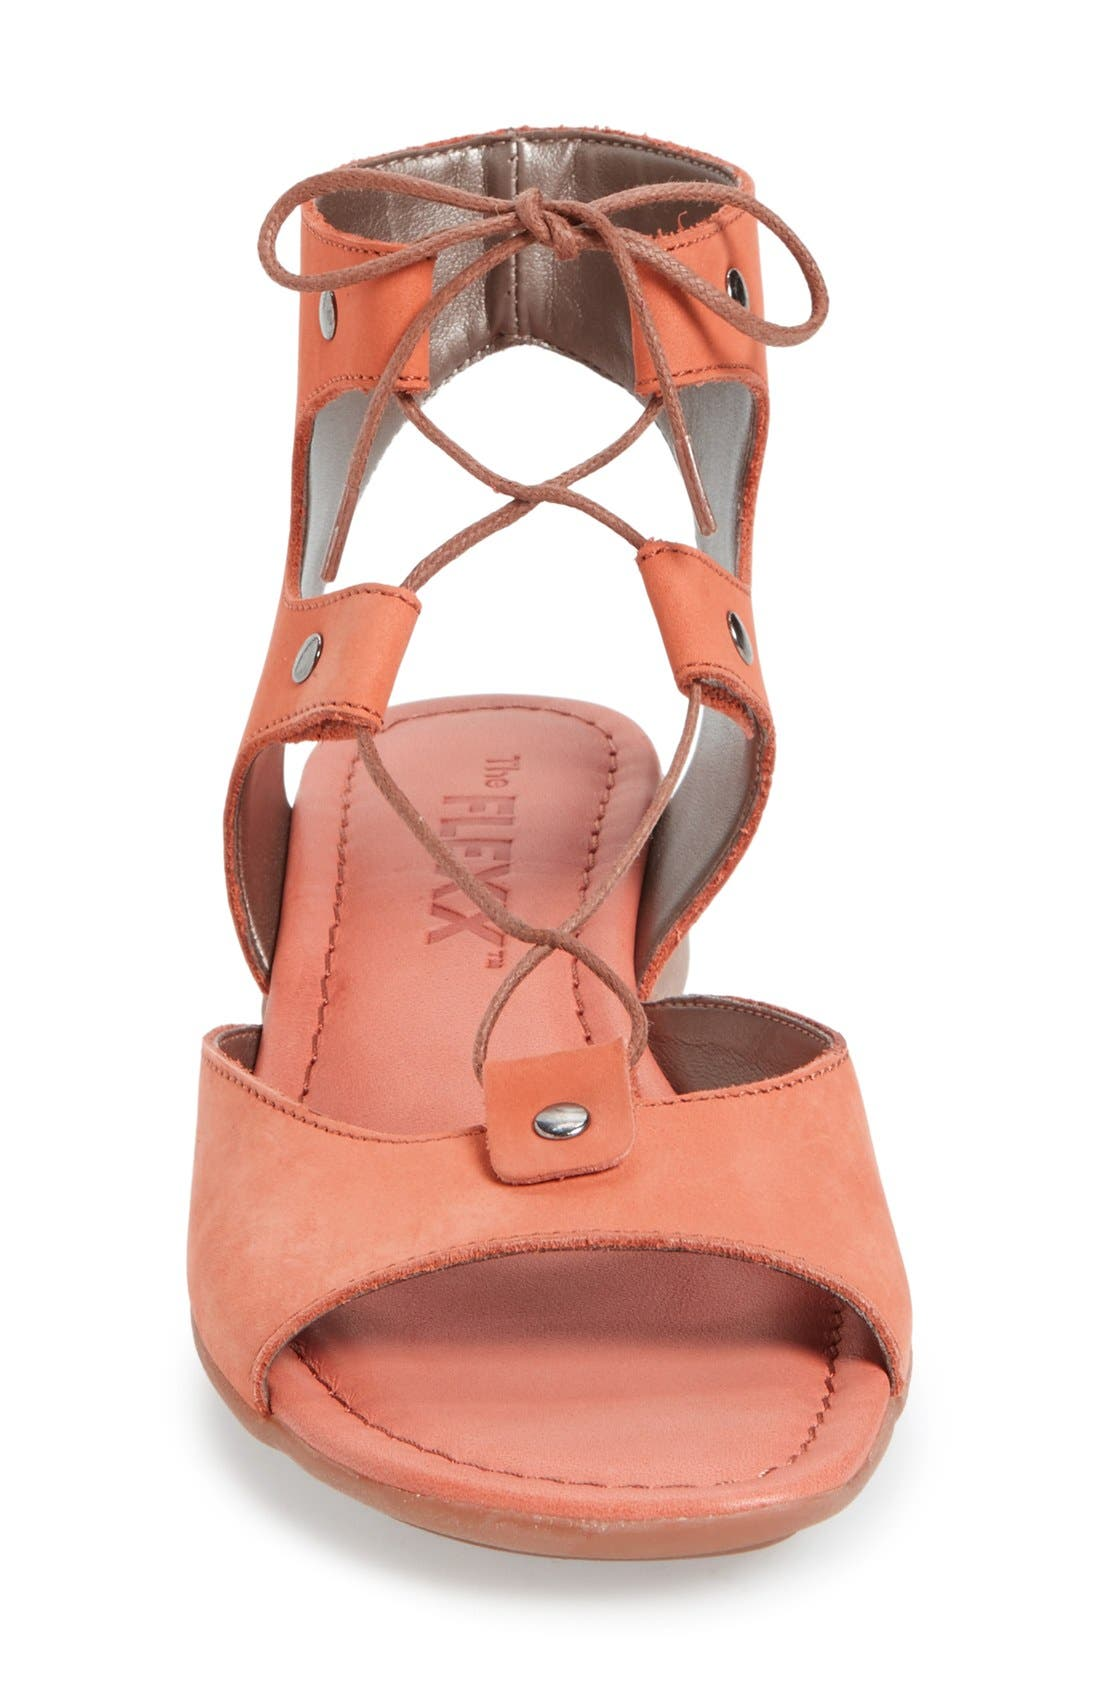 Lace-Up Gladiator Sandal,                             Alternate thumbnail 3, color,                             Heat Nubuck Leather